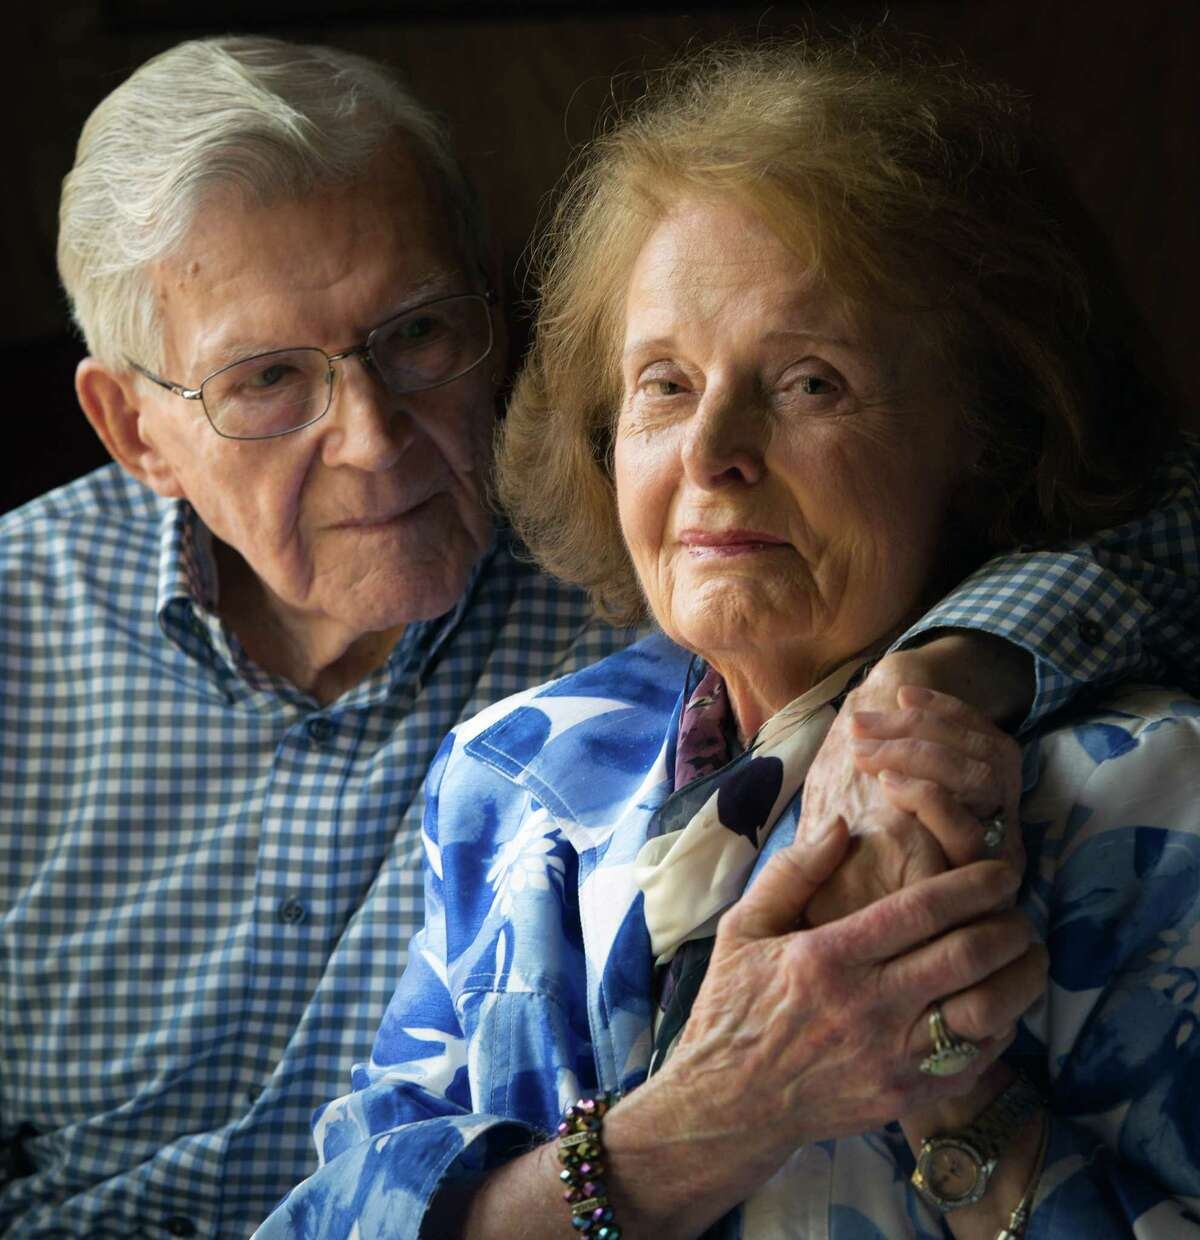 Thomas and Geraldine Barthlow are coping with an unexpected heartbreak after traveling from Florida to Texas for a funeral.